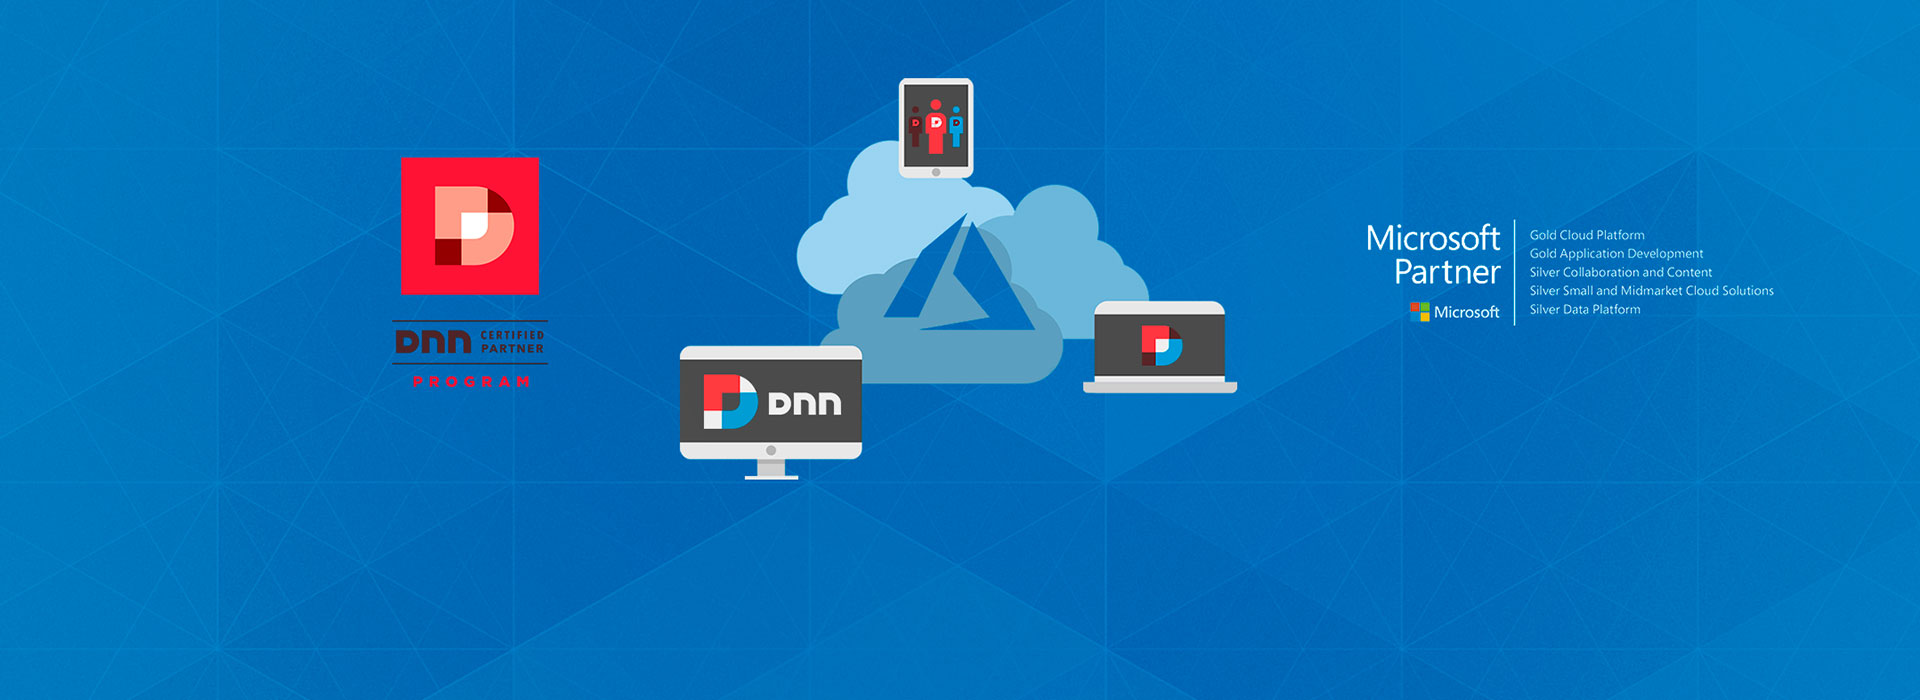 Experts in DNN managed services in azure